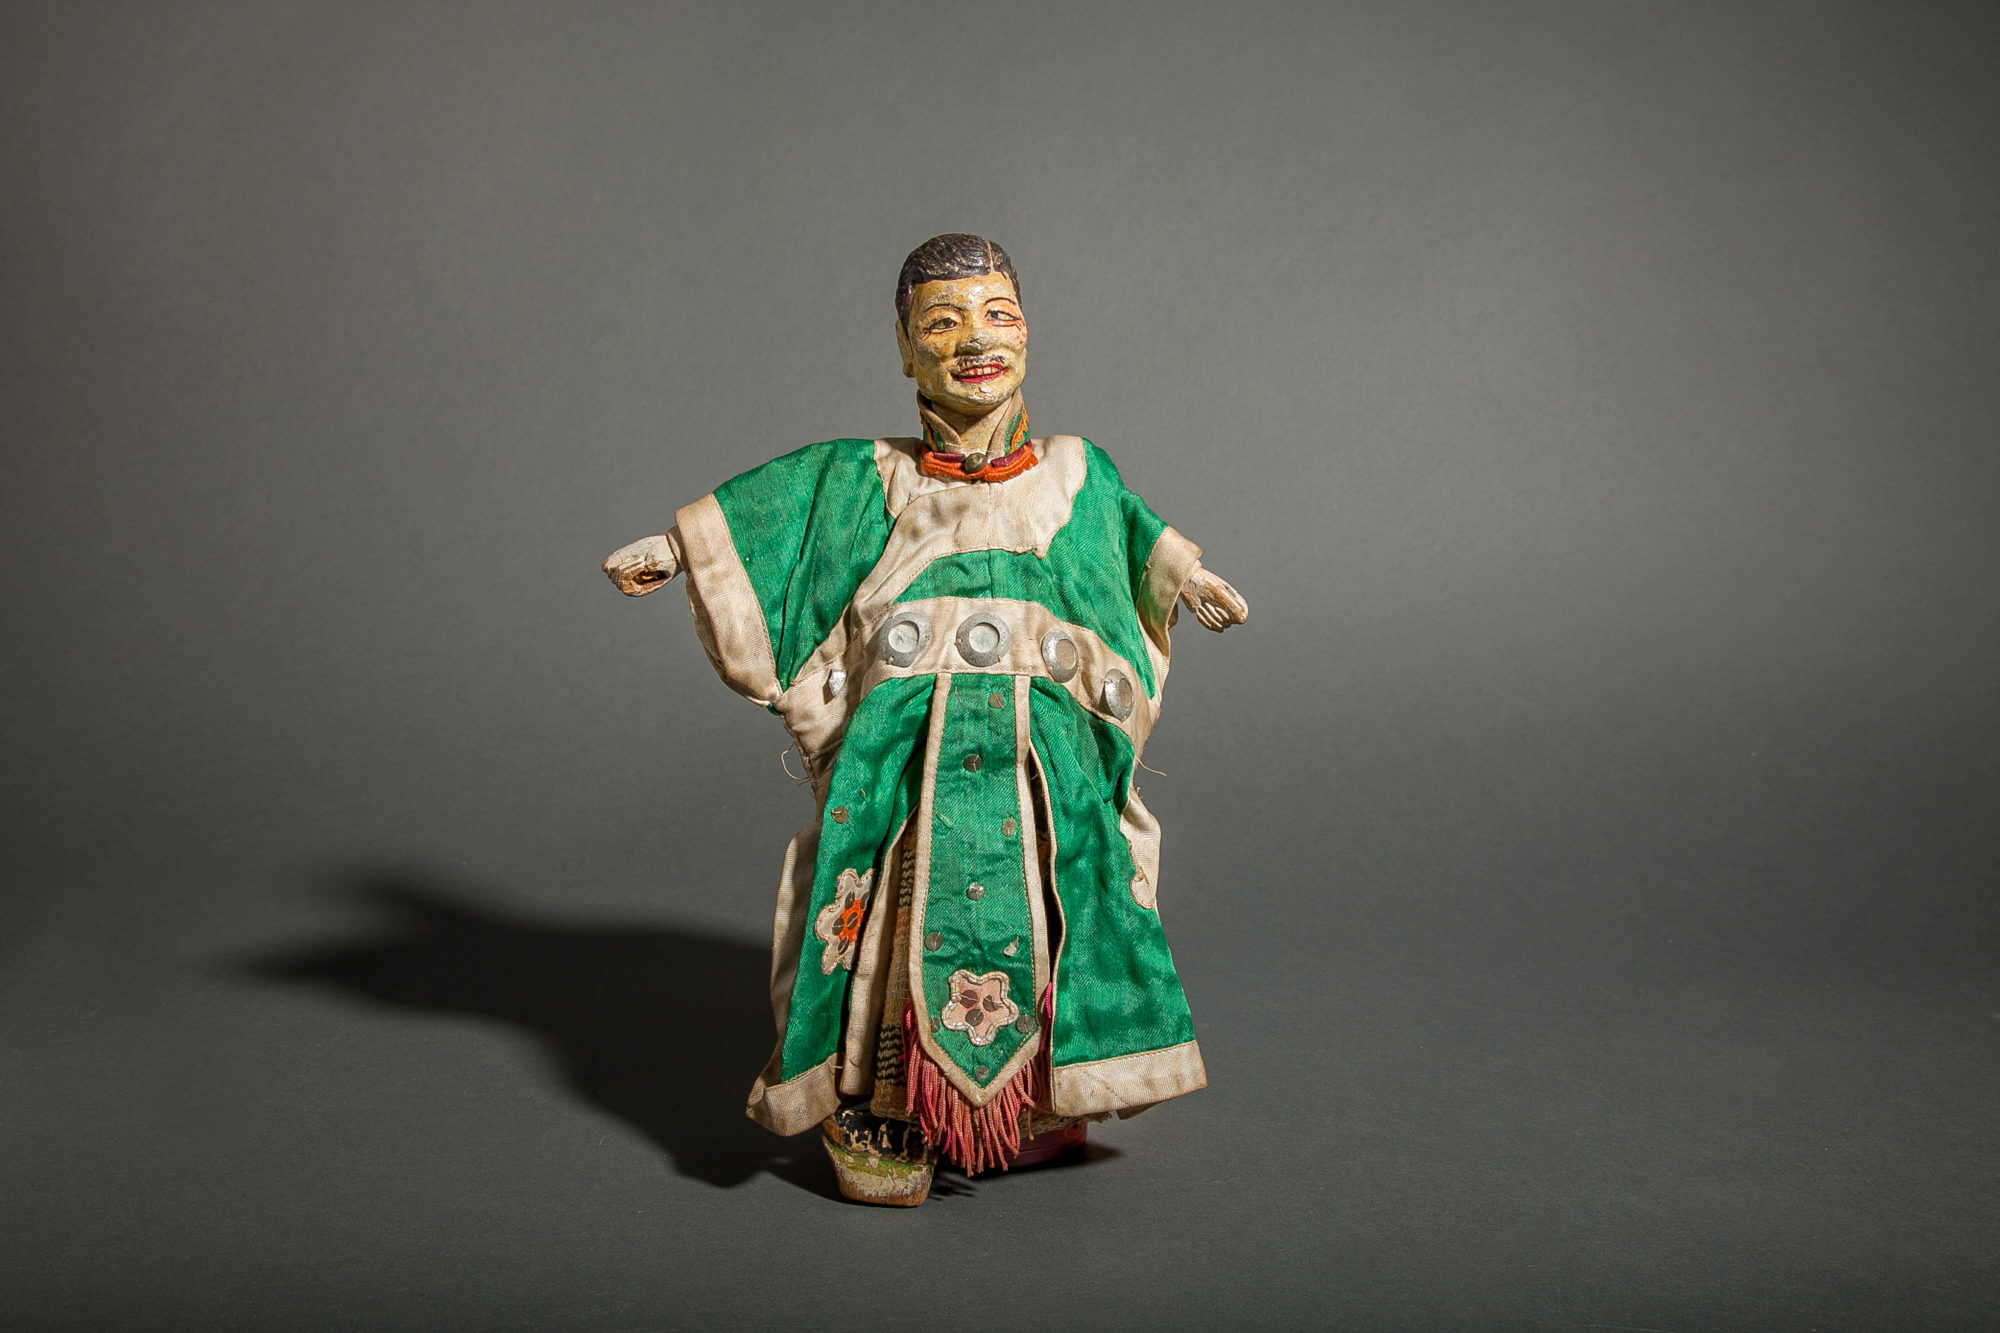 Chinese Hand Puppet.